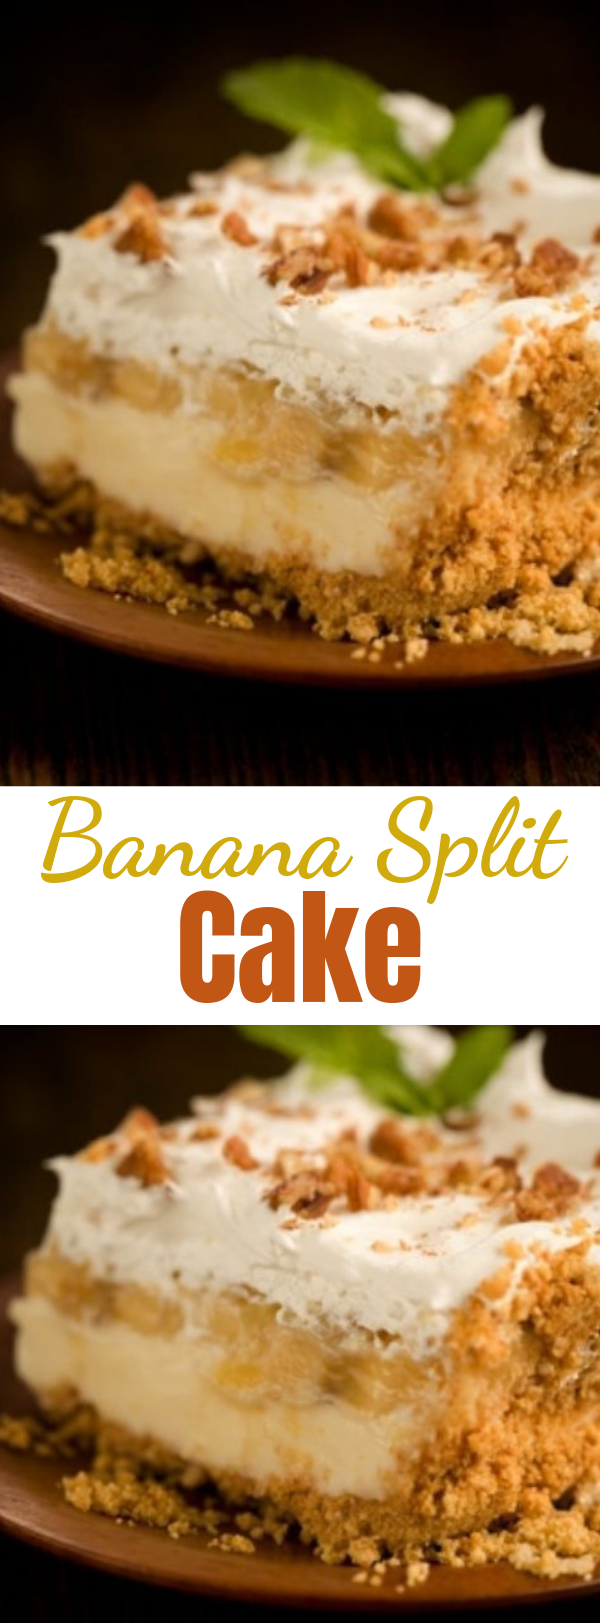 Banana Split Cake - This is scrumptious and so easy to make but so impressive to serve. #bananasplitcake #bananacake #cake #banana